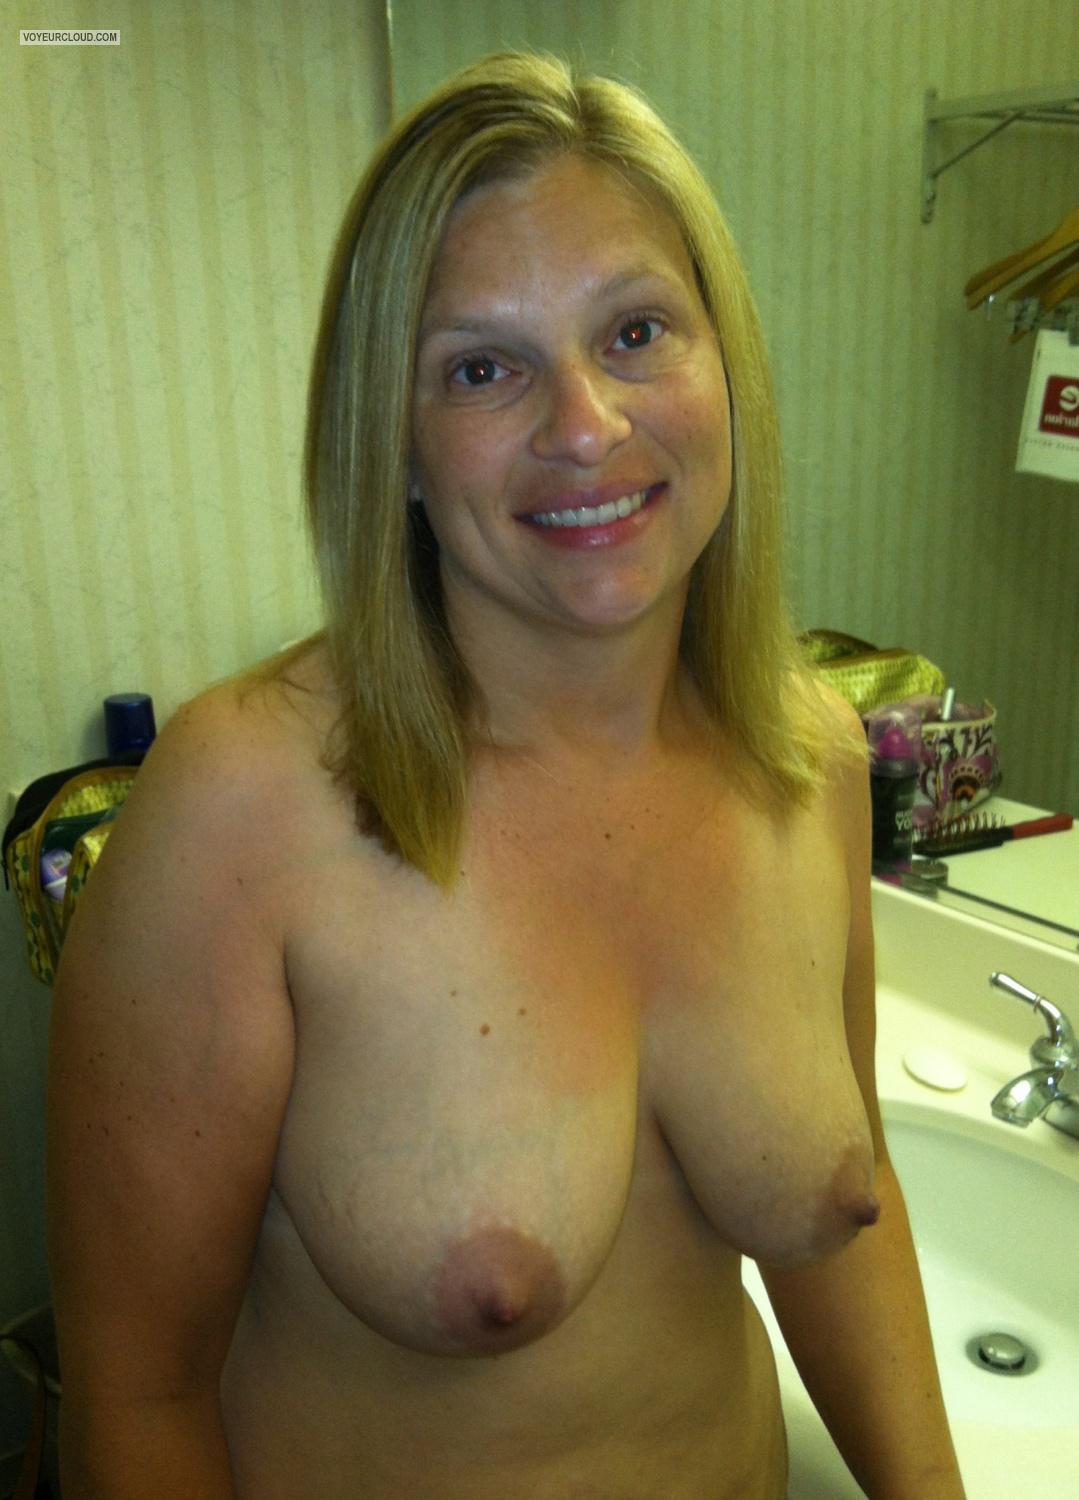 Tit Flash: Medium Tits By IPhone - Topless American Girl from United States